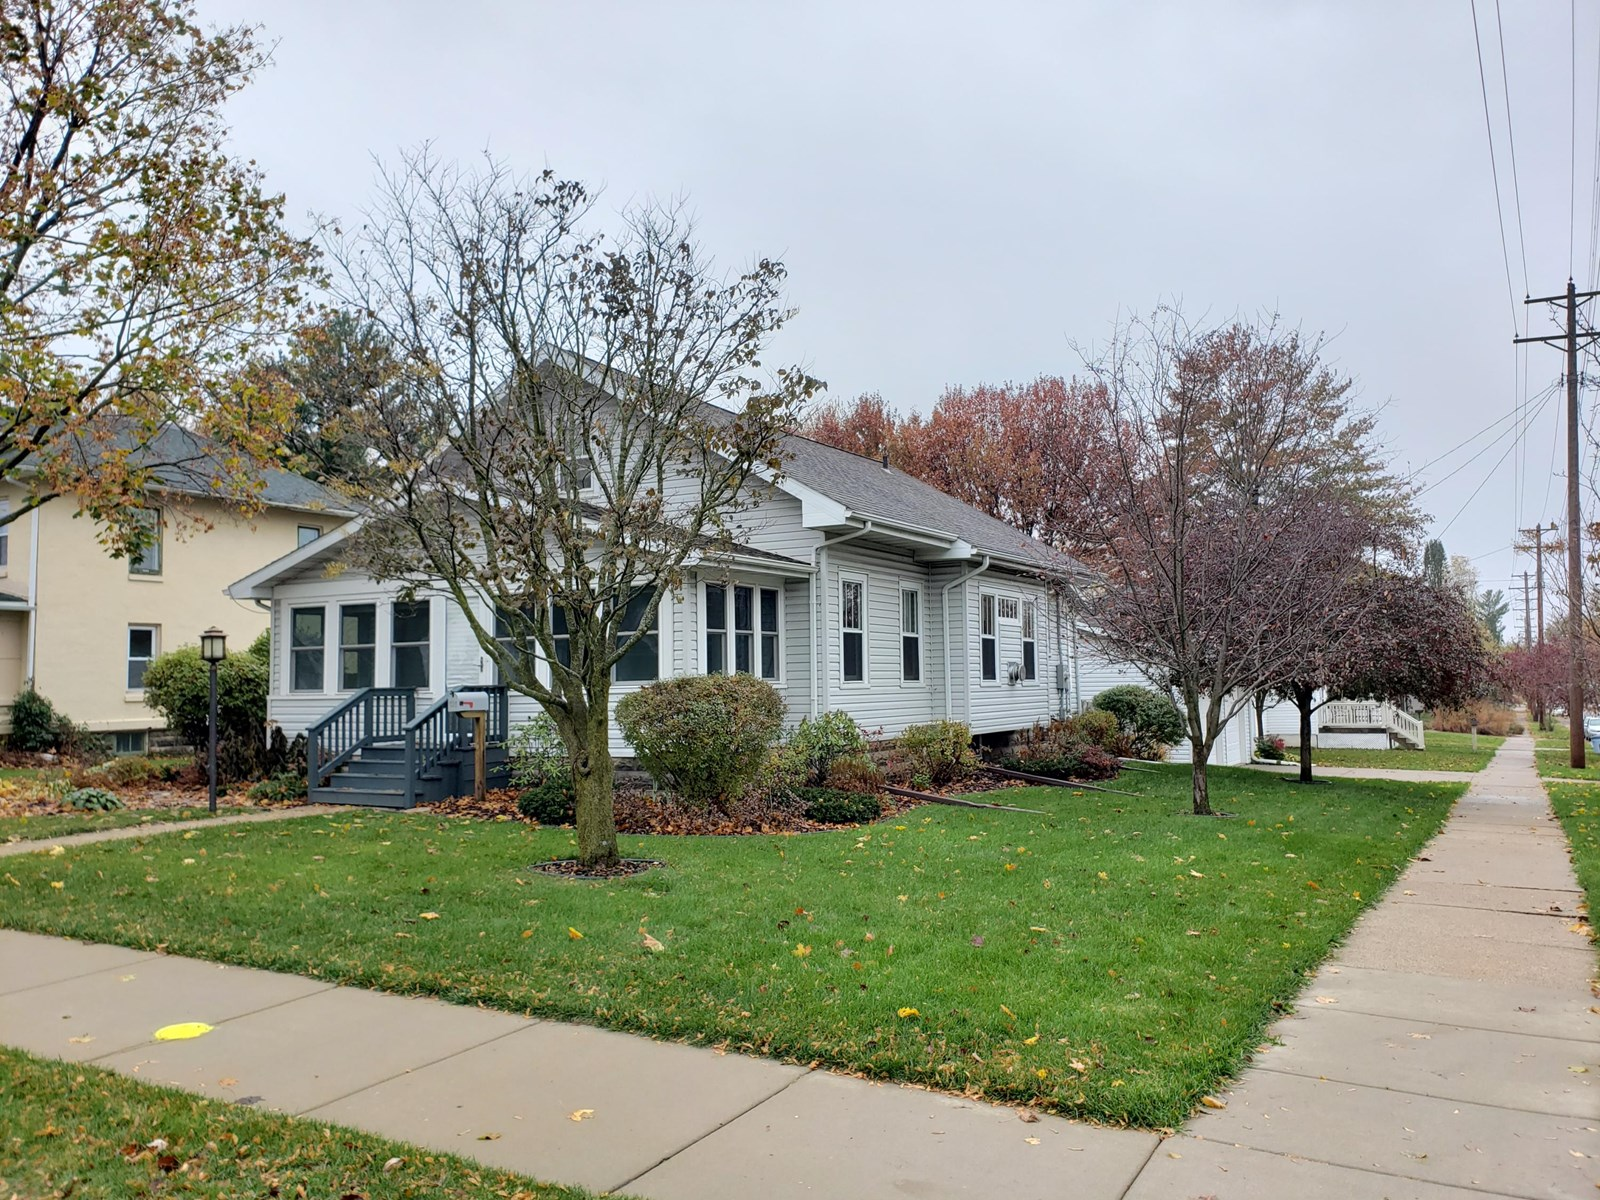 3 Bedroom Home for sale in-town, Viroqua, WI